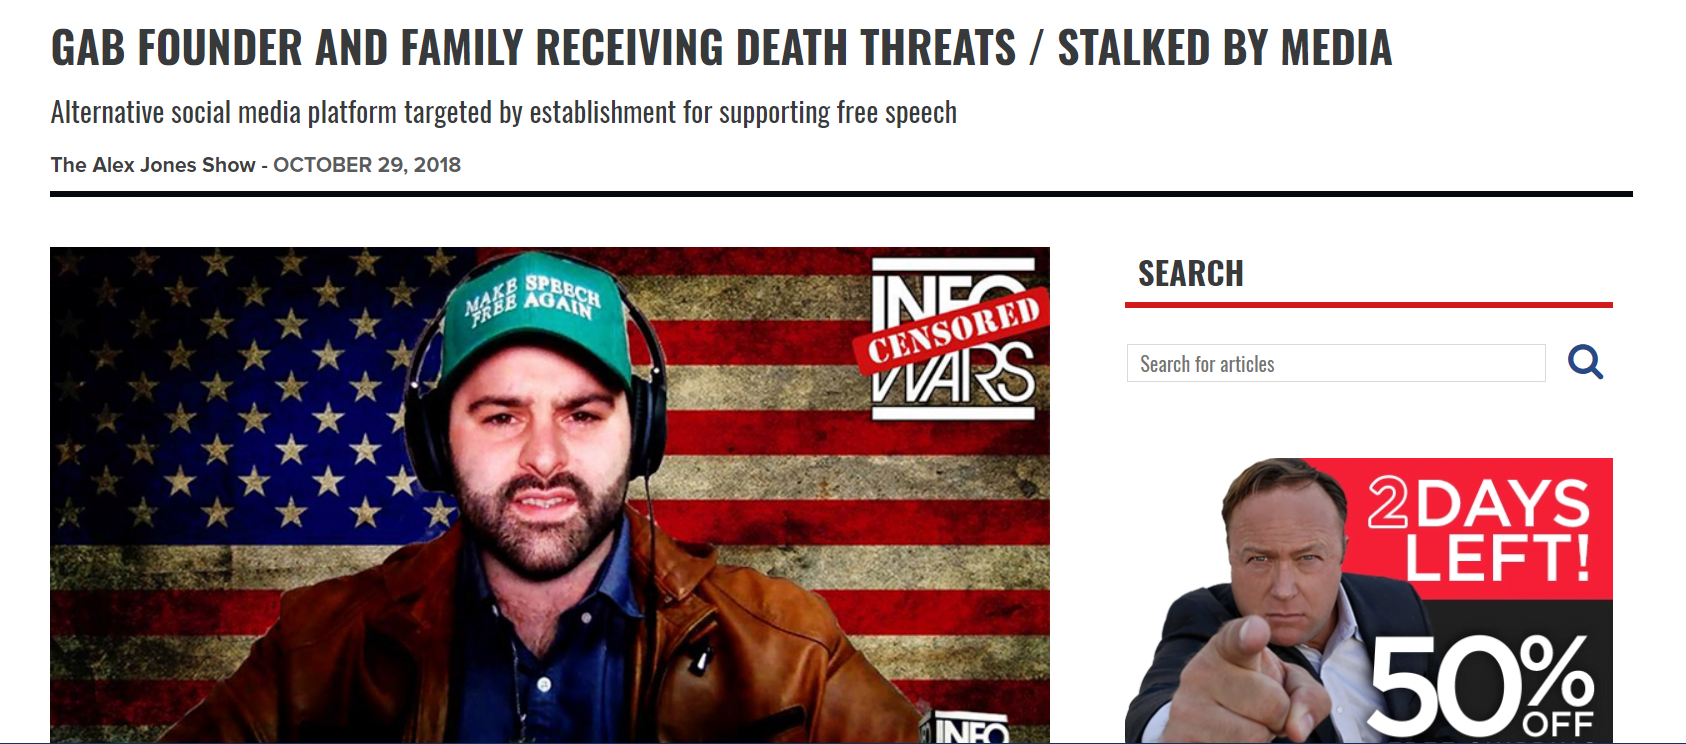 Infowars claims that Gab CEO is receiving death threats